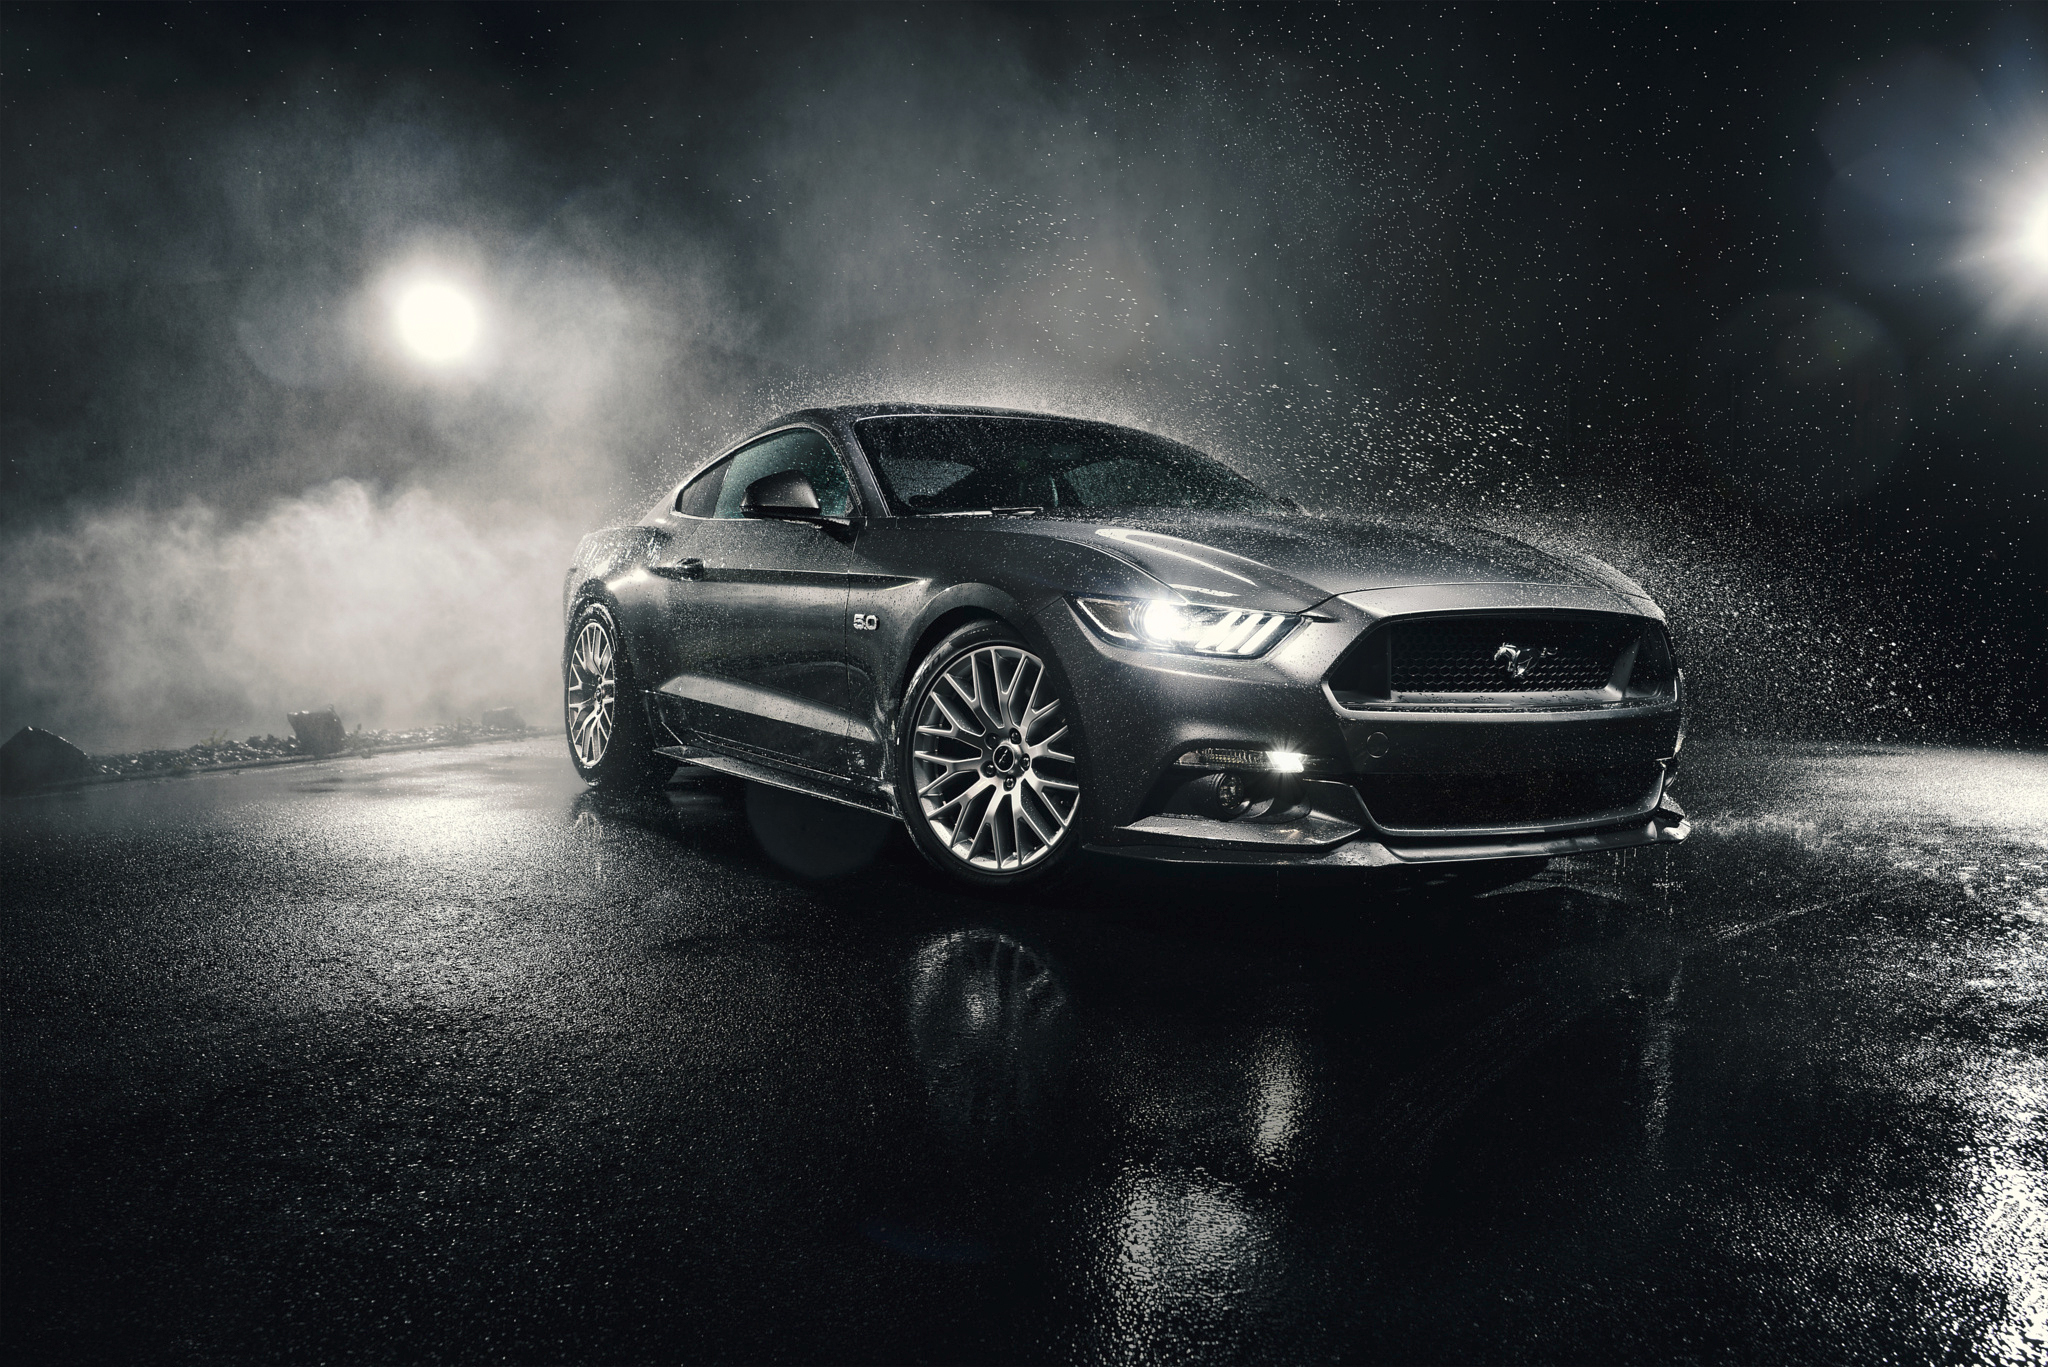 Ford Mustang Gt Wallpapers Pictures Images